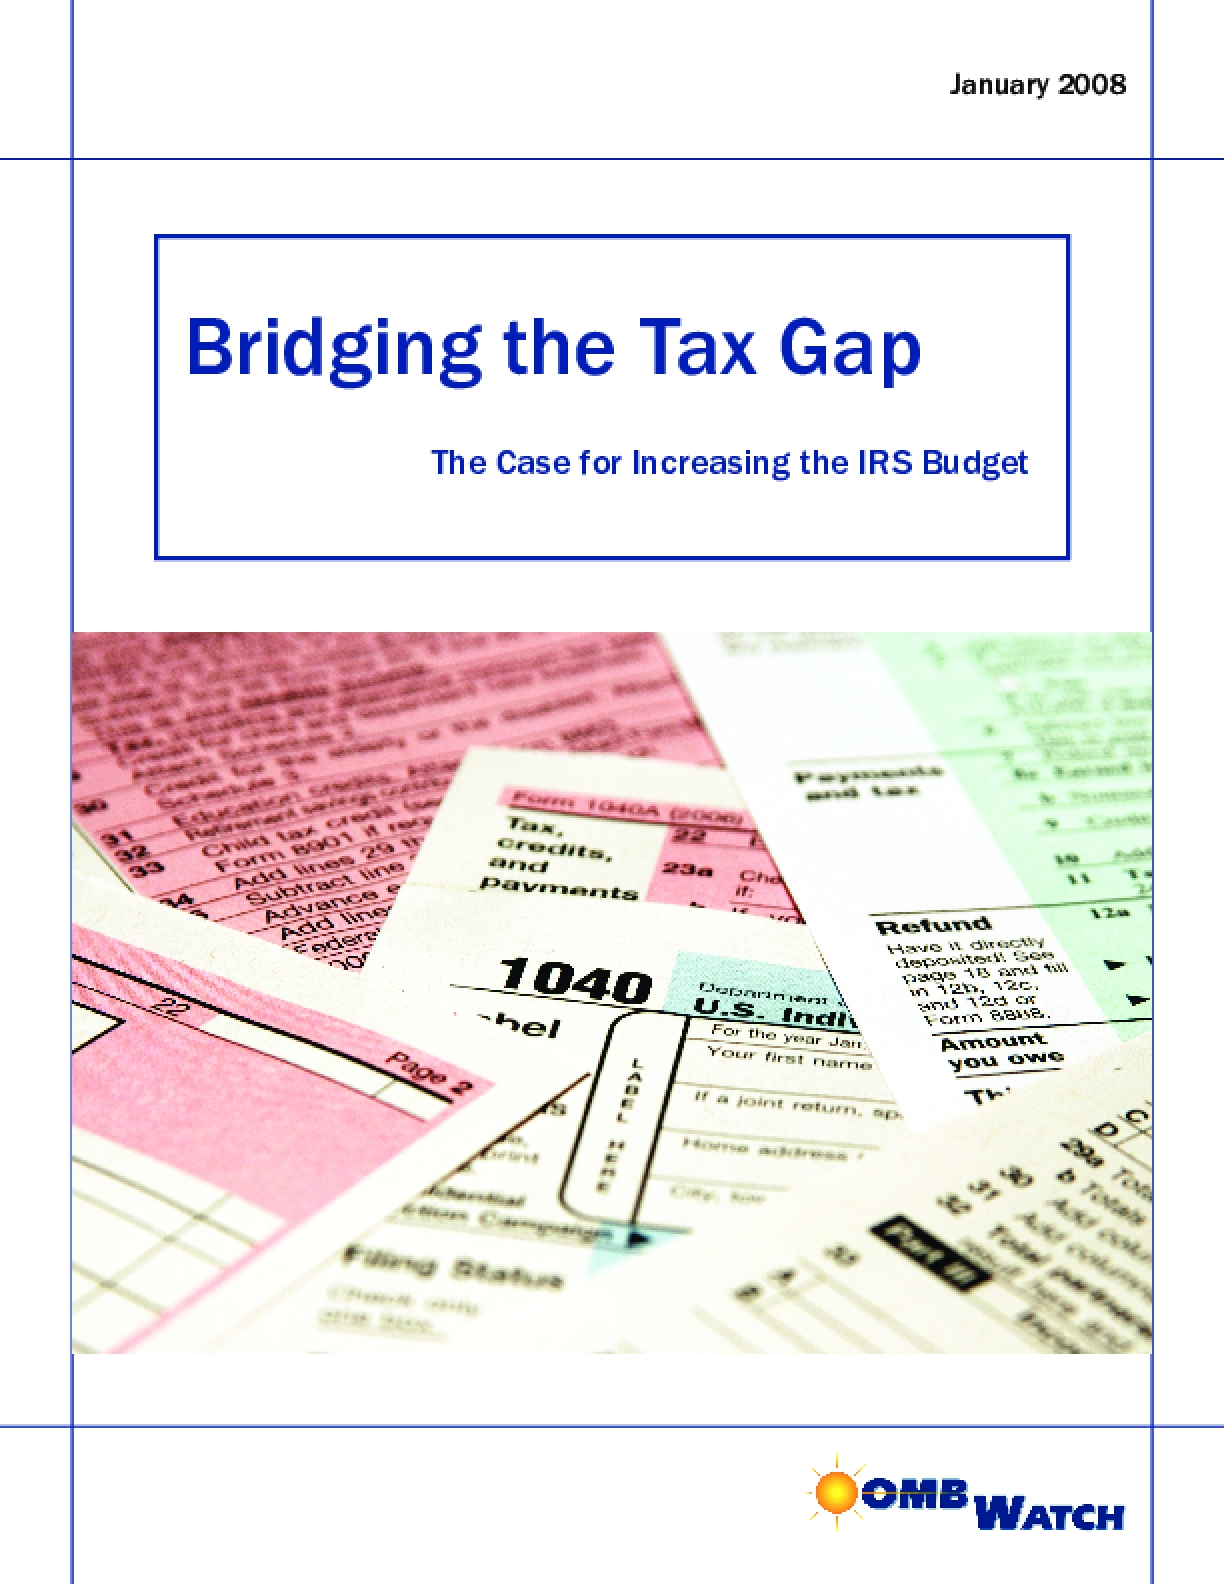 Bridging the Tax Gap: The Case for Increasing the IRS Budget